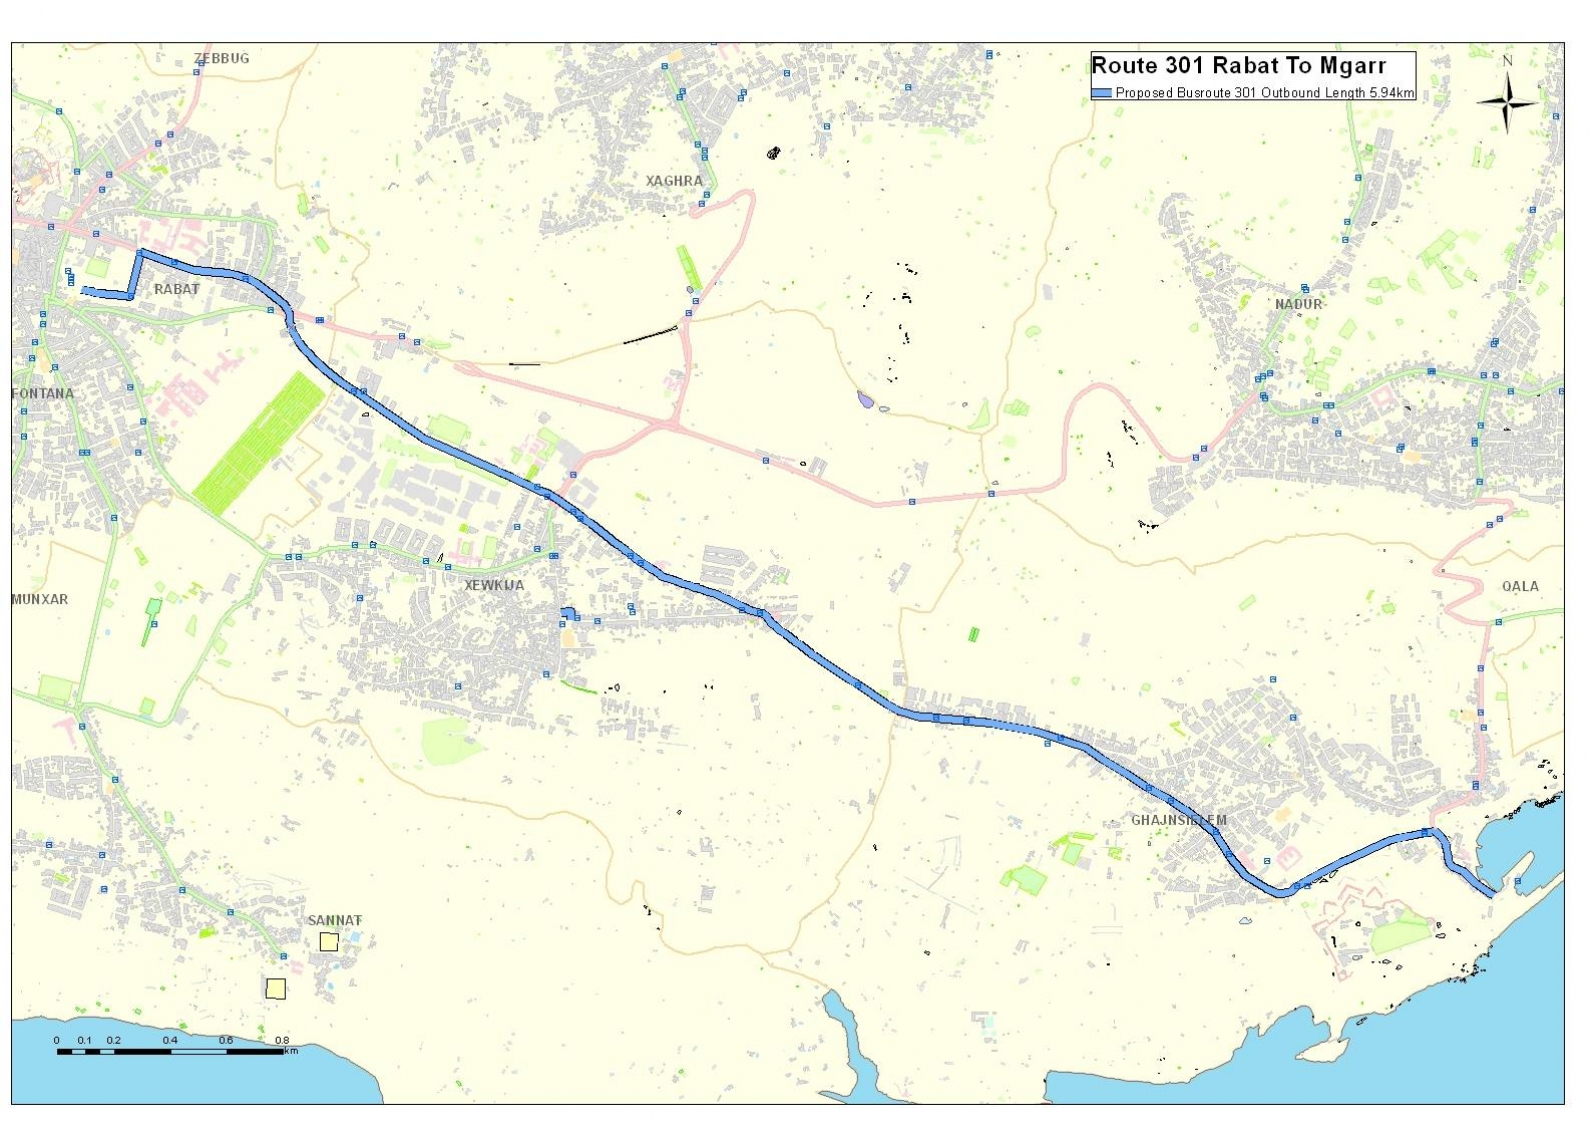 Land-current-network-routes-and-schedules-Gozo-2